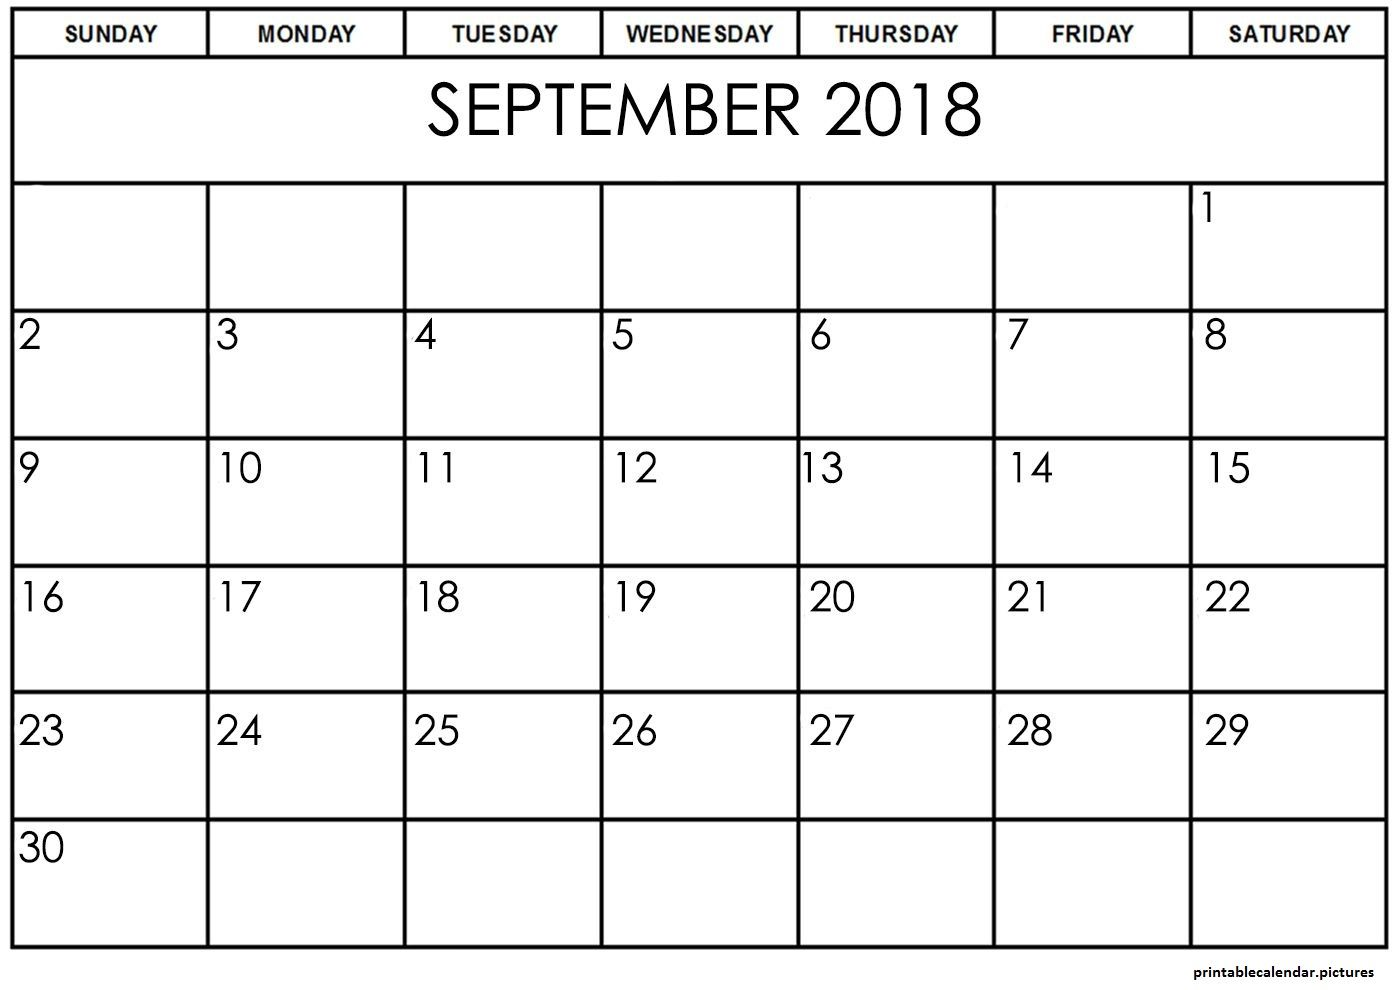 Pin By Printablepictures On September 2018 Calendar Template